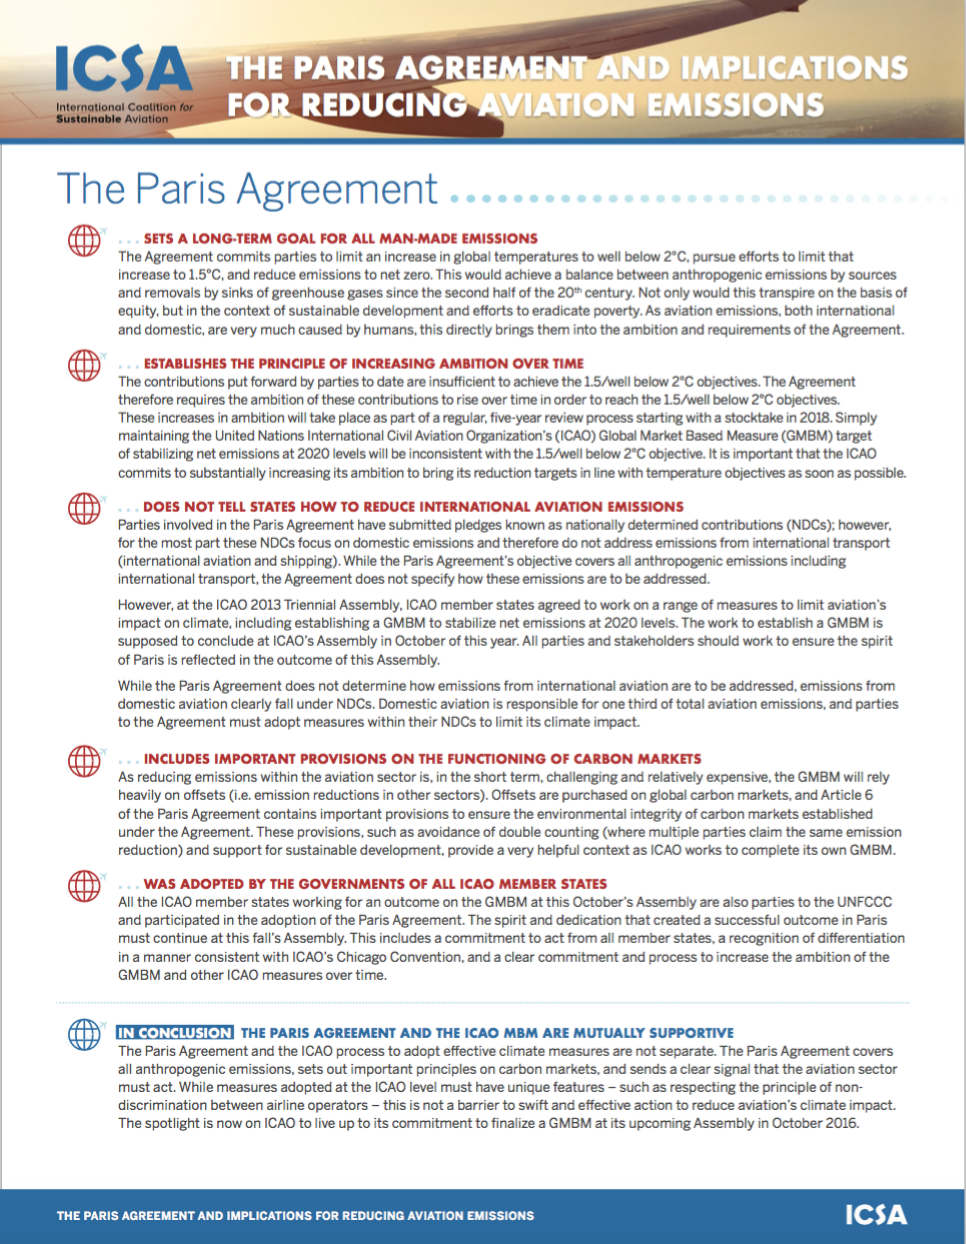 The Paris Agreement And Implications For Reducing Aviation